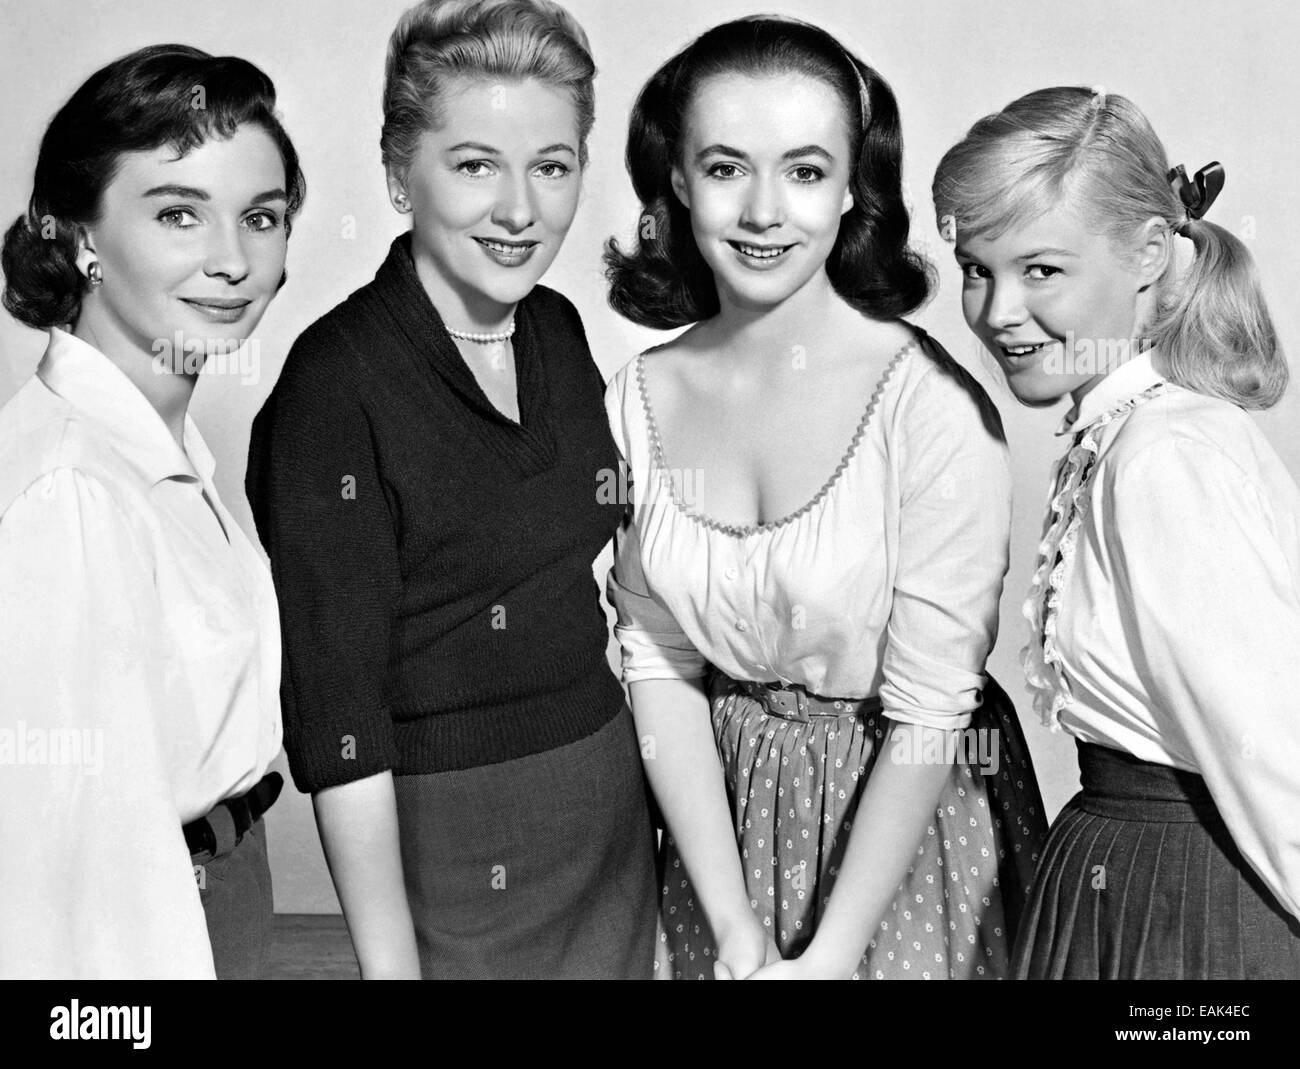 UNTIL THEY SAIL 1957 MGM film. From left: Jean Simmons, Joan Fontaine, Piper Laurie, Sandra Dee - Stock Image